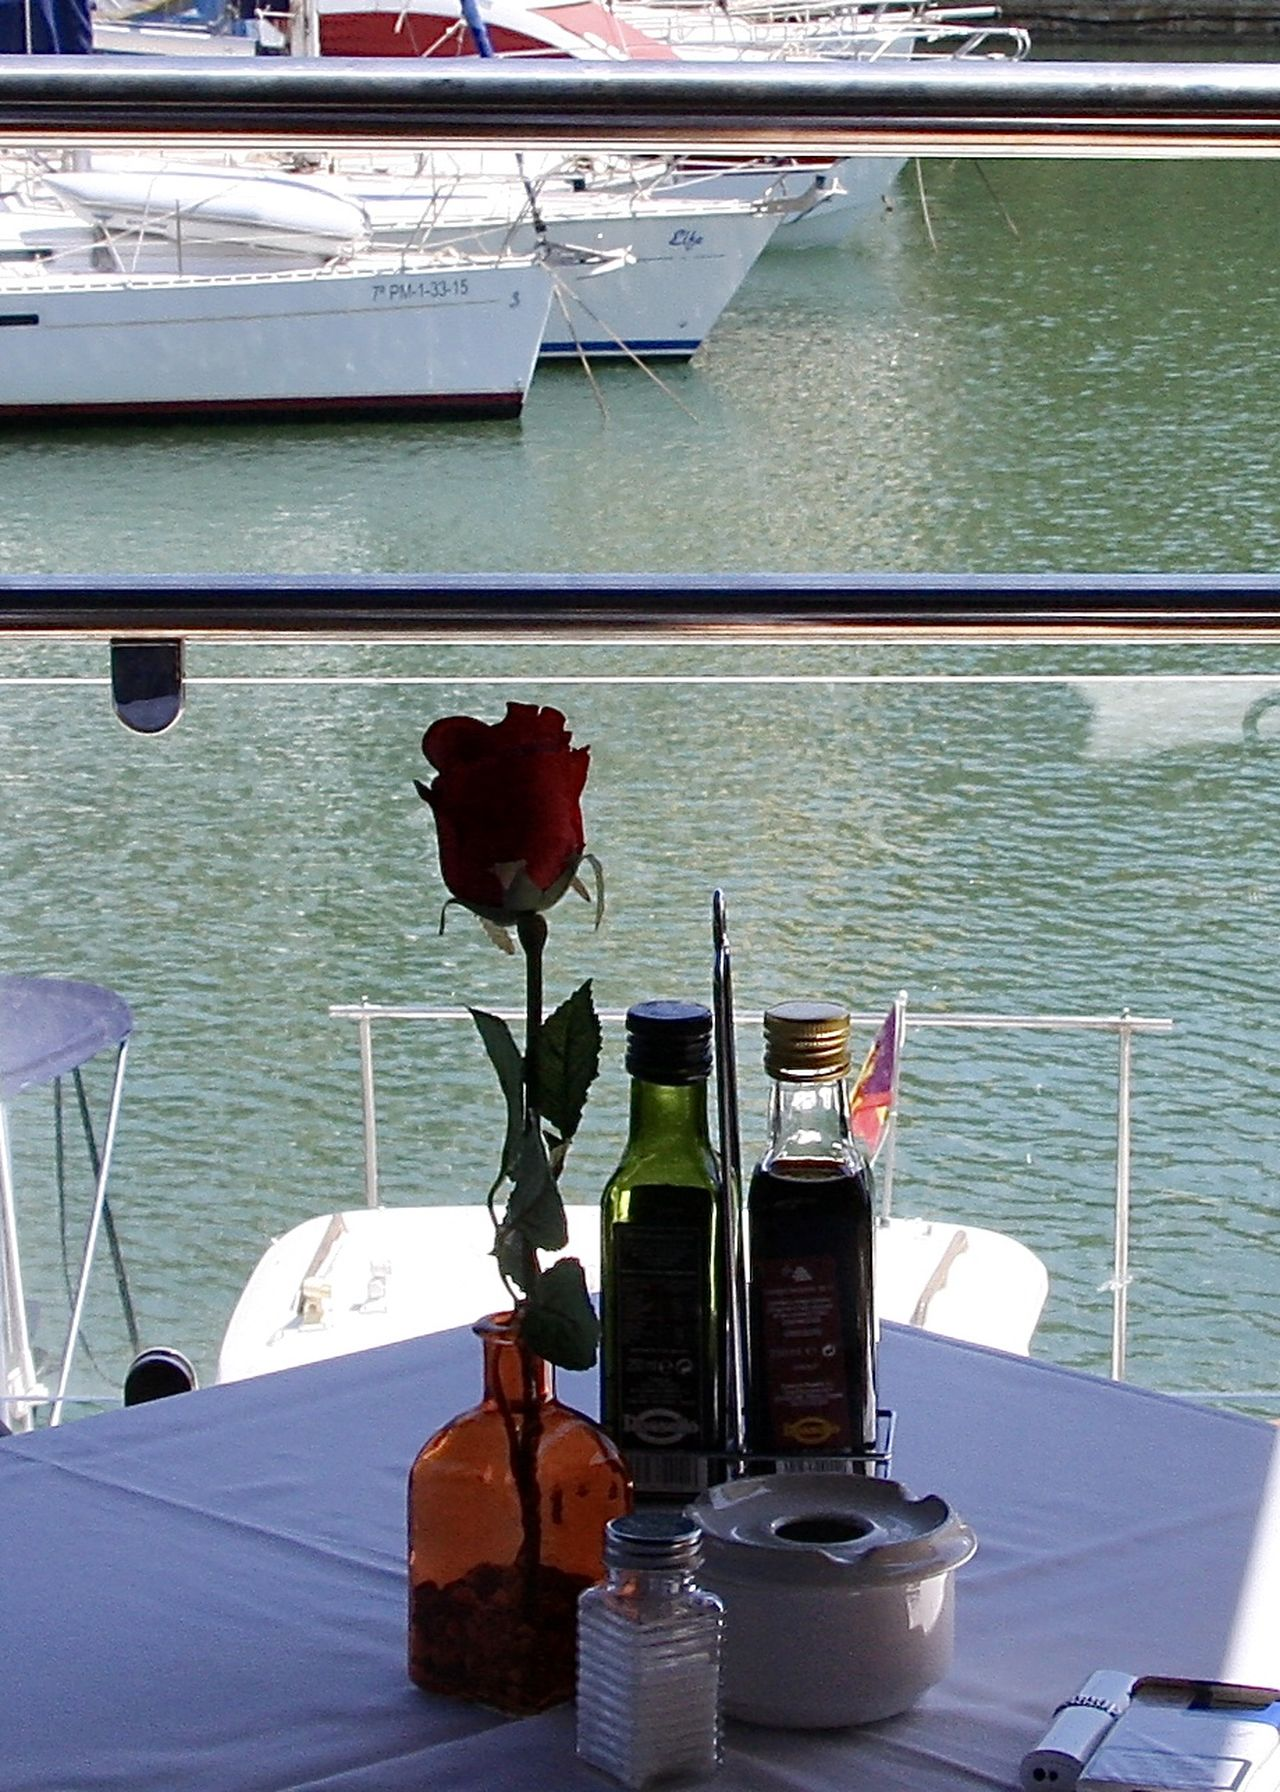 Arrangement Cigarettes Rose - Flower EyeEm Best Shots Flower Food And Drink Harbor Lunch Lunch Time! Mallorca Mediterranean  Mediterranean Sea Nautical Vessel Olive Oil Port Restaurant SPAIN Still Life Table Take Your Place Terrace Travel Water Wine Moments Wineandmore